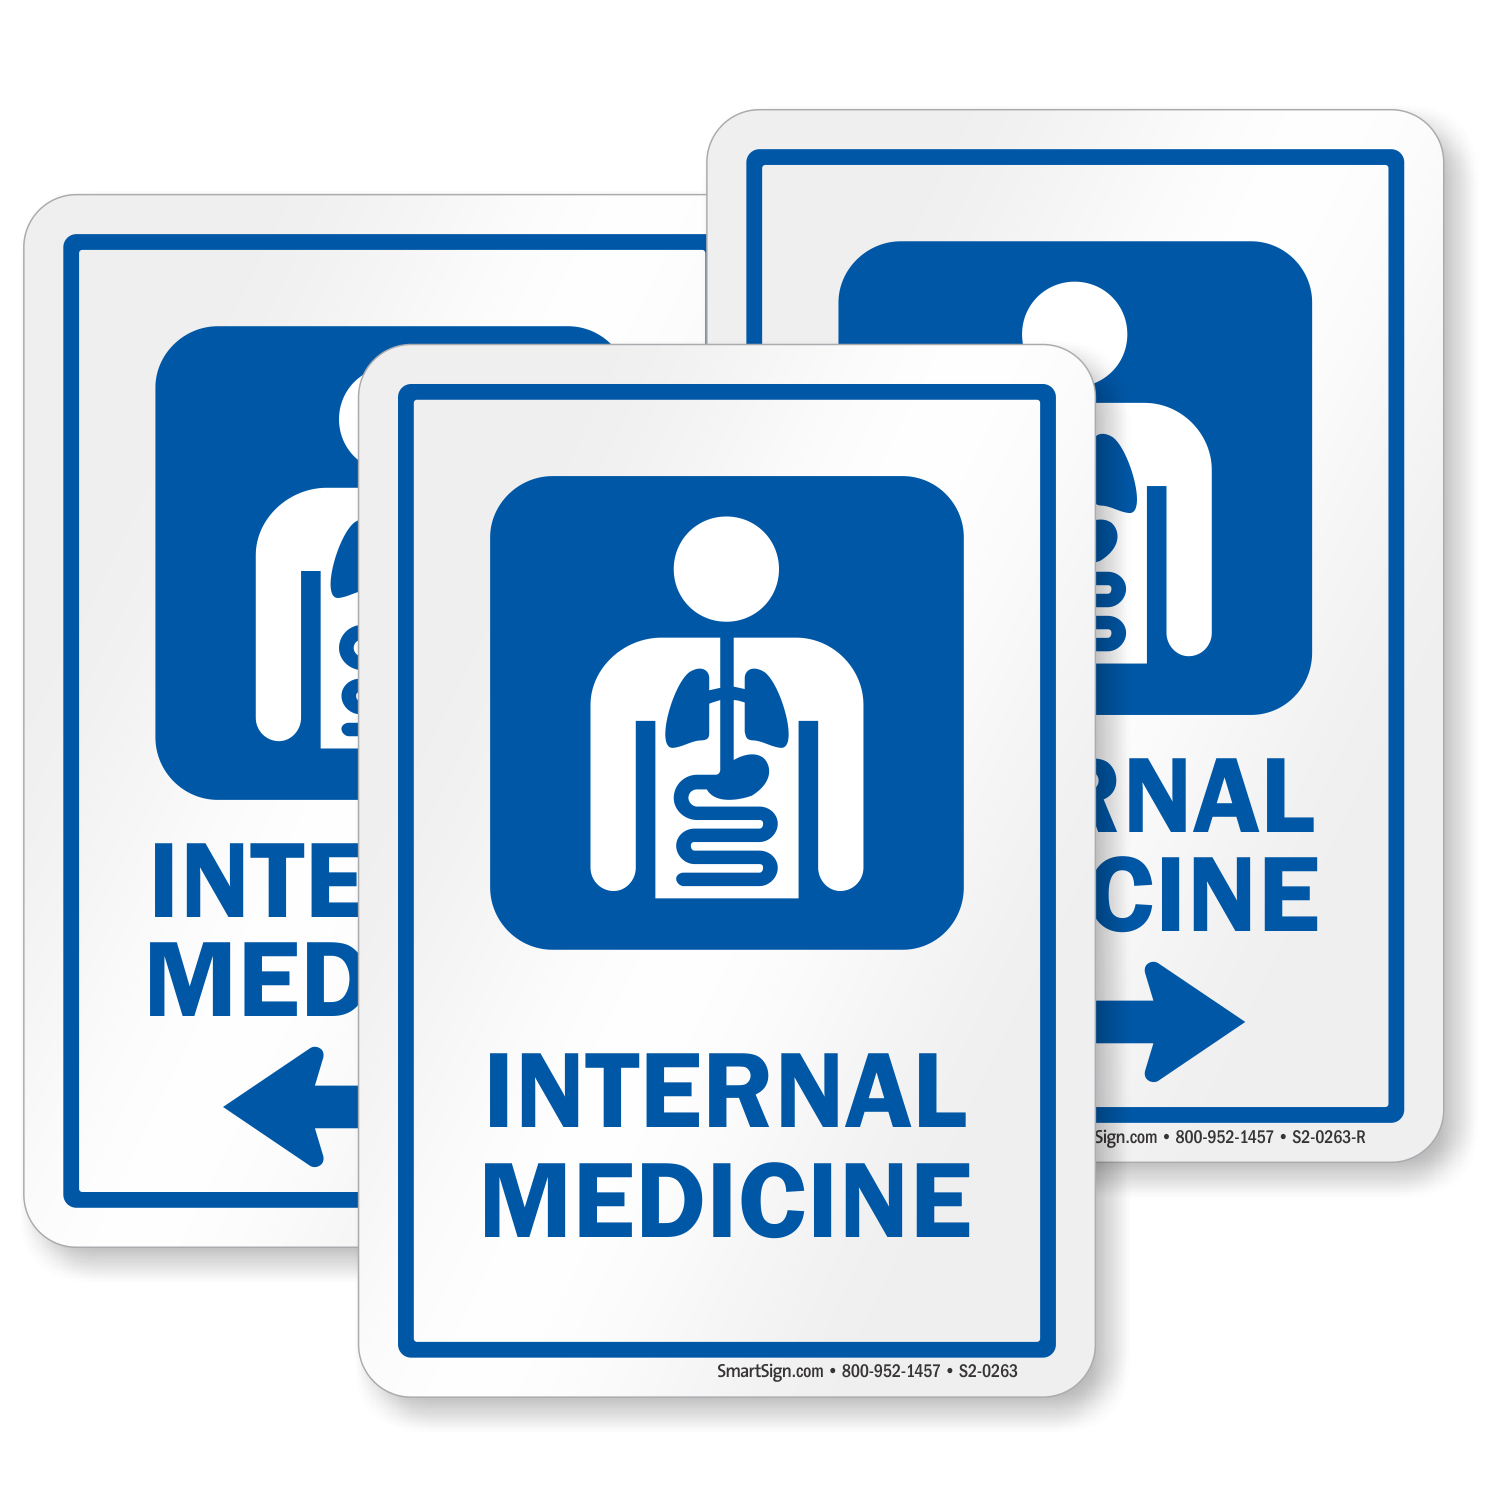 internal medicine What is internal medicine internal medicine is the medical specialty that focuses on diagnosis, treatment, and prevention of diseases in adults.